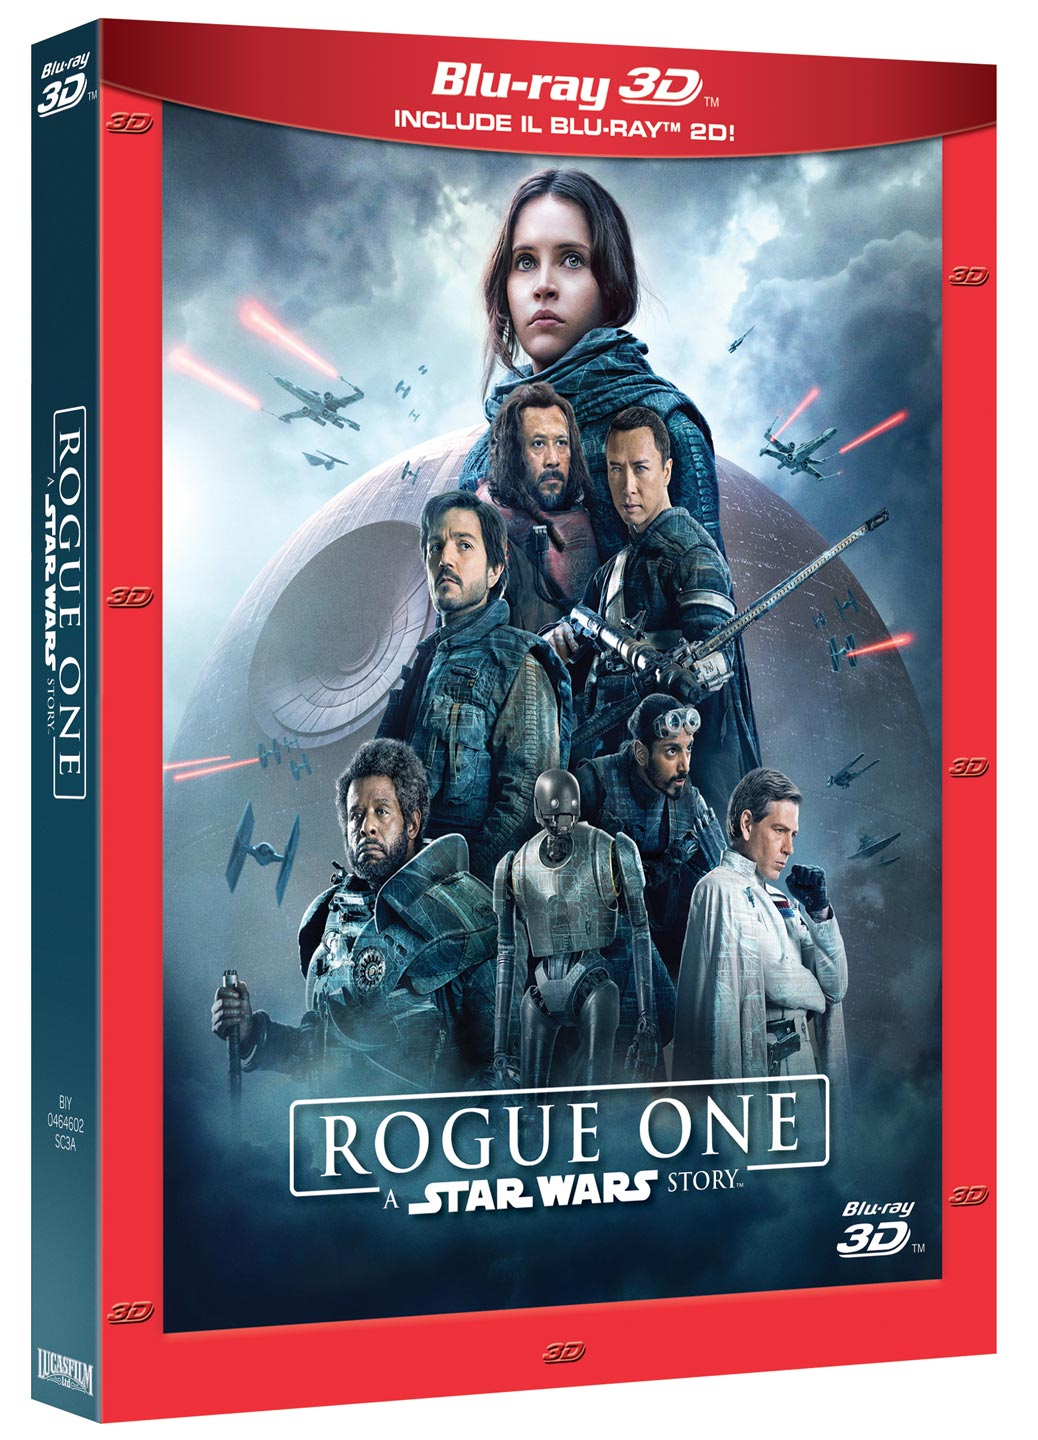 Star Wars - Rogue One (2016) (3D)